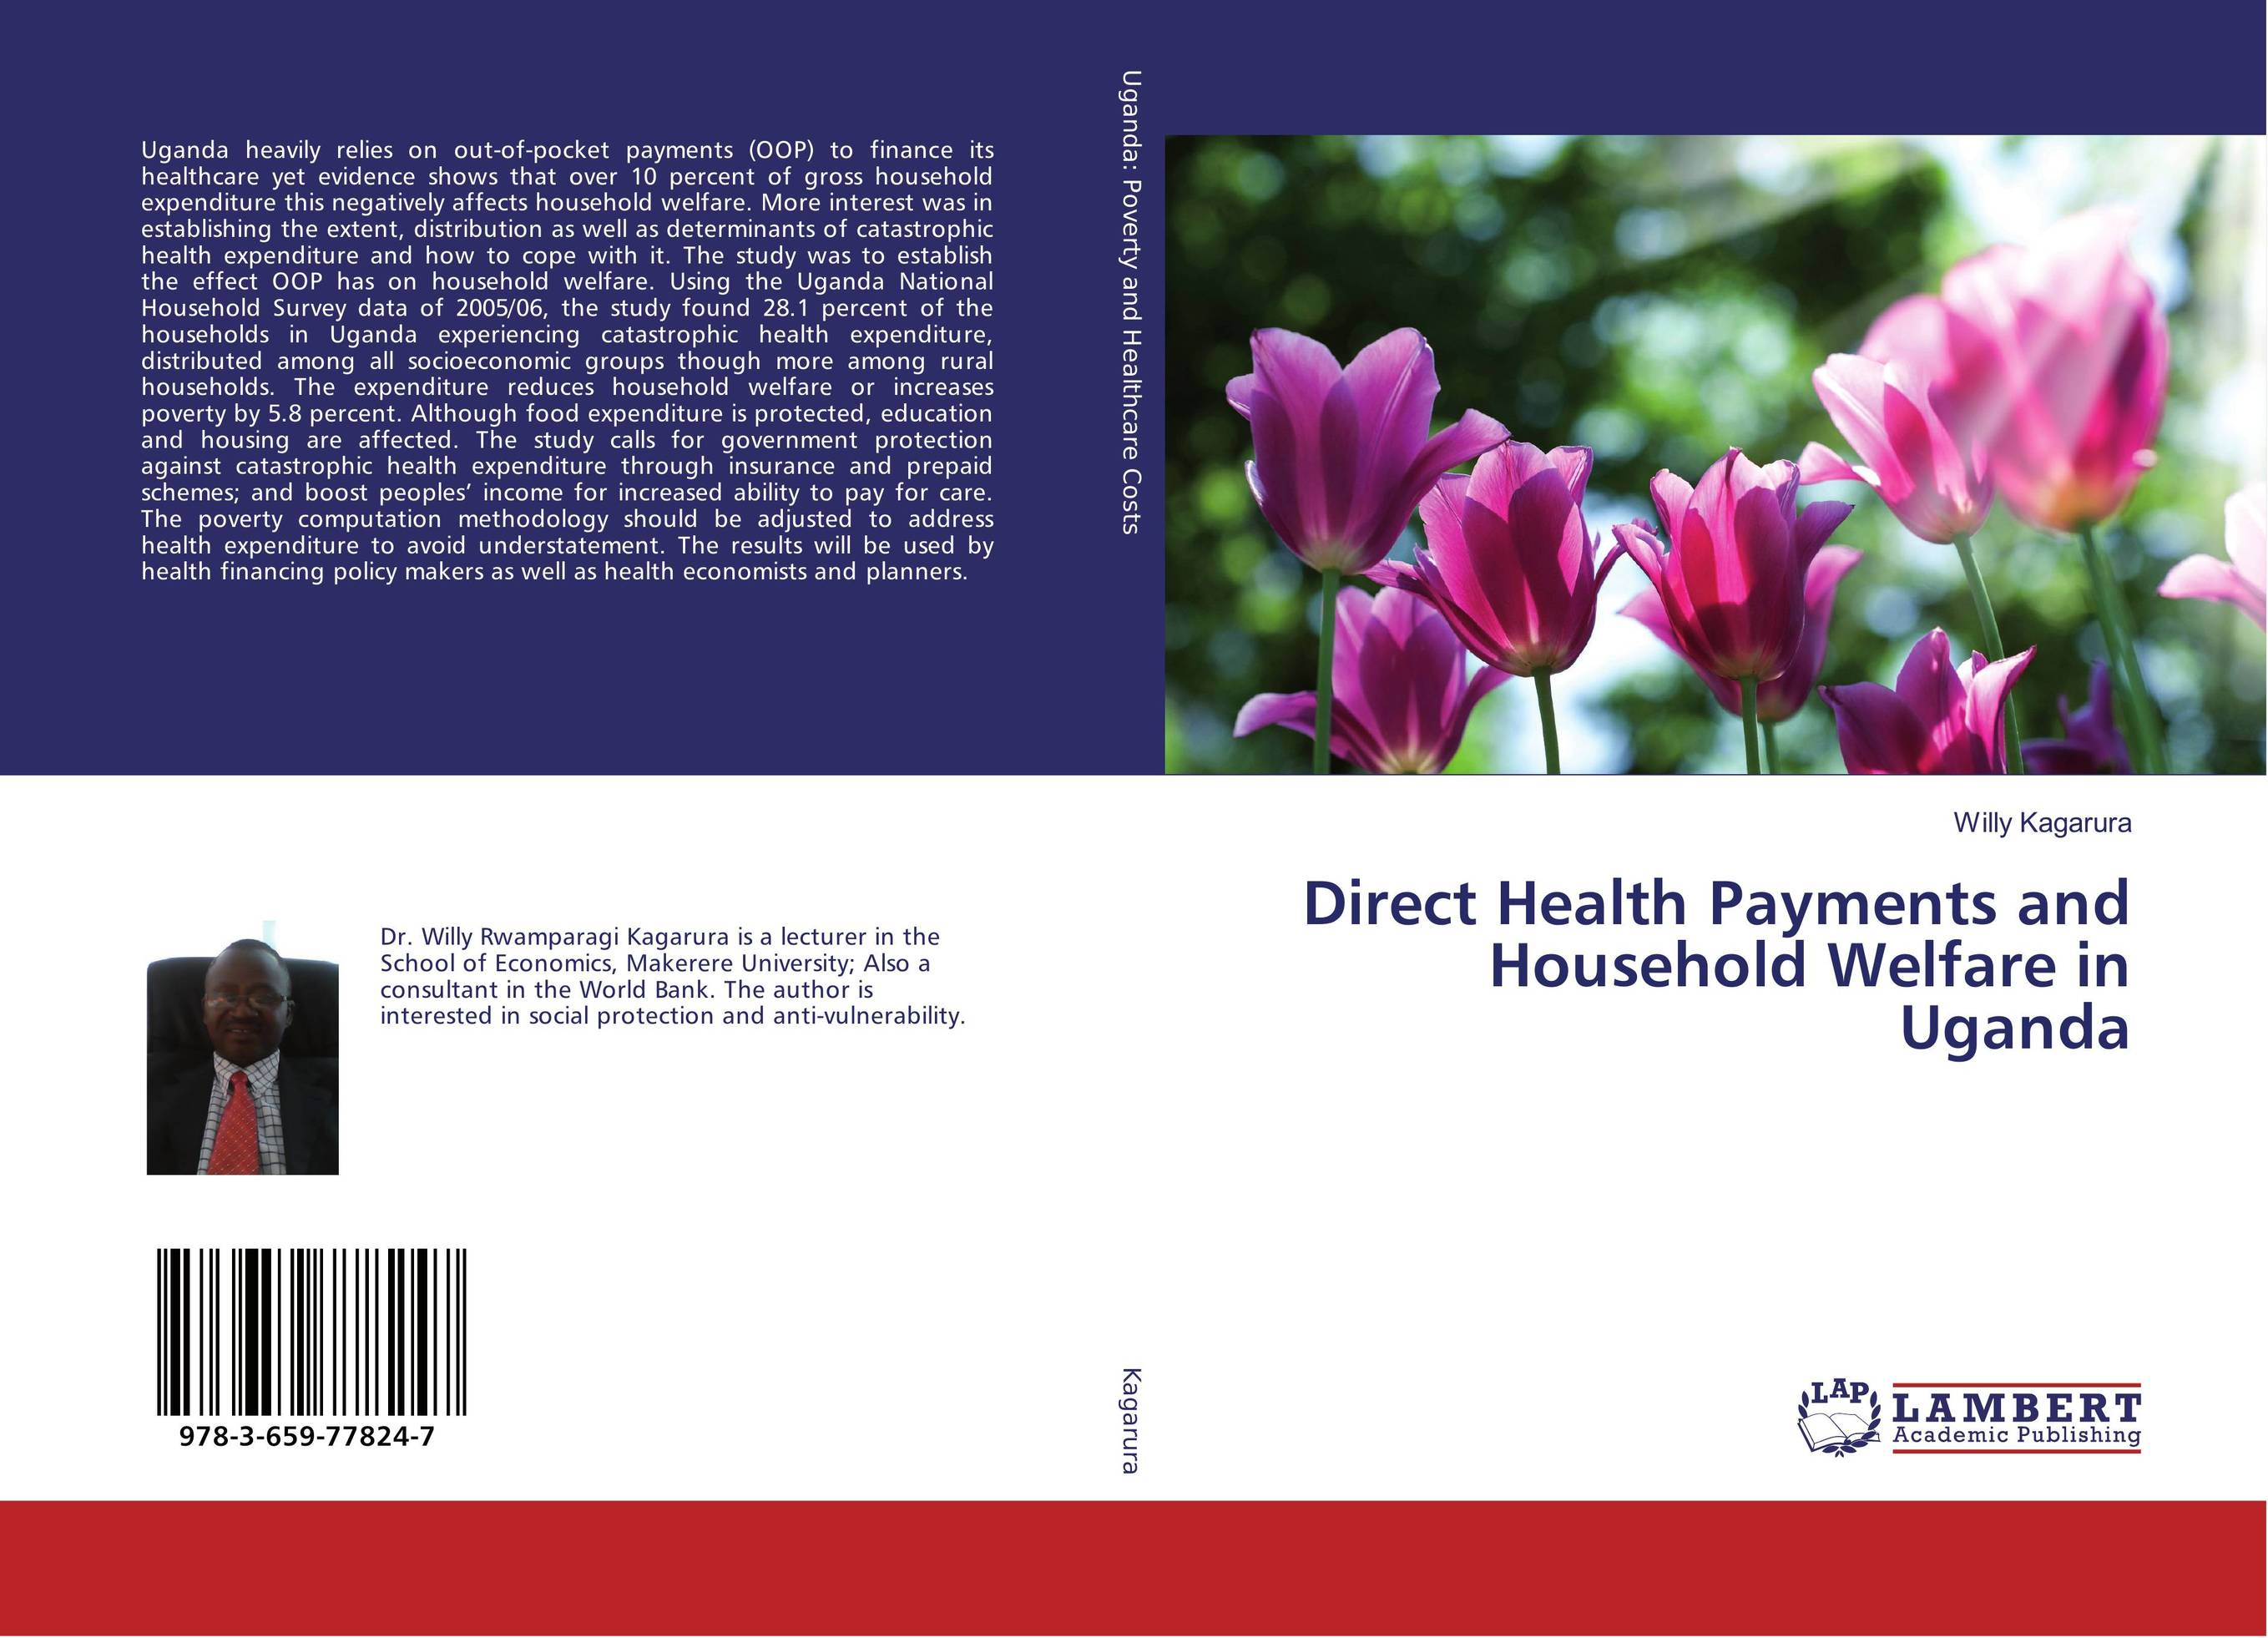 Direct Health Payments and Household Welfare in Uganda jimmy evens equitable life payments bill